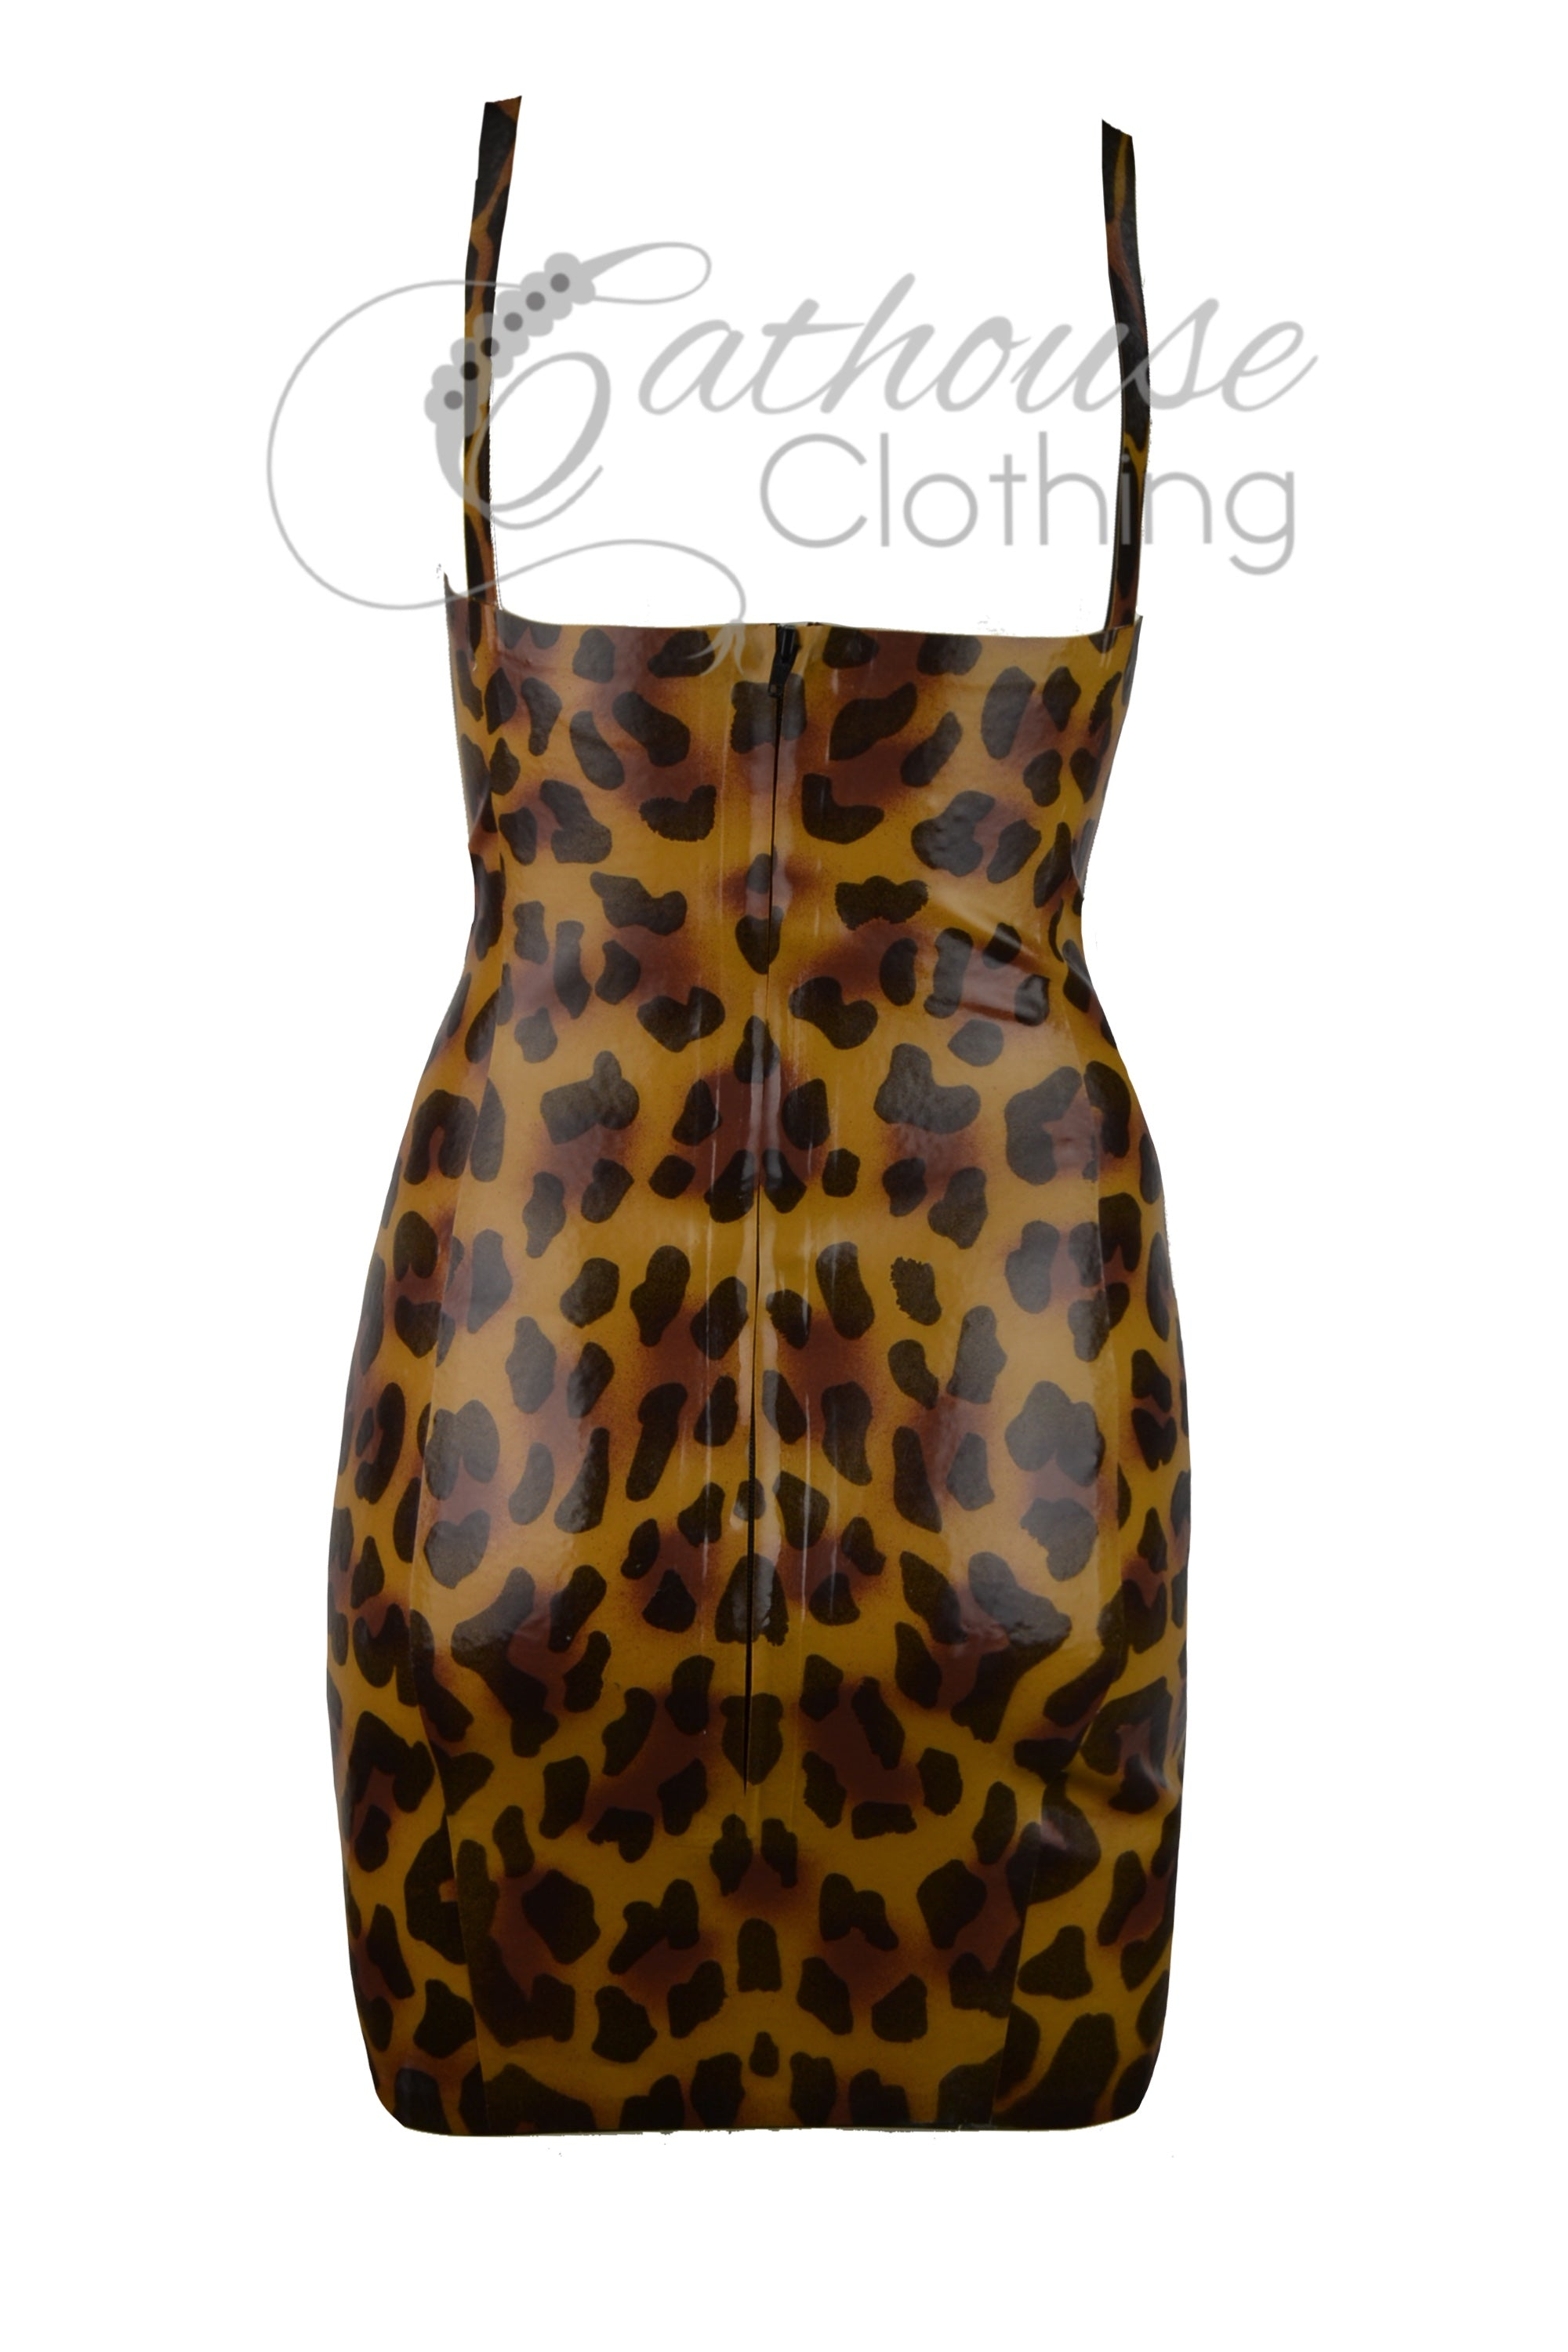 Cheetah bustier dress